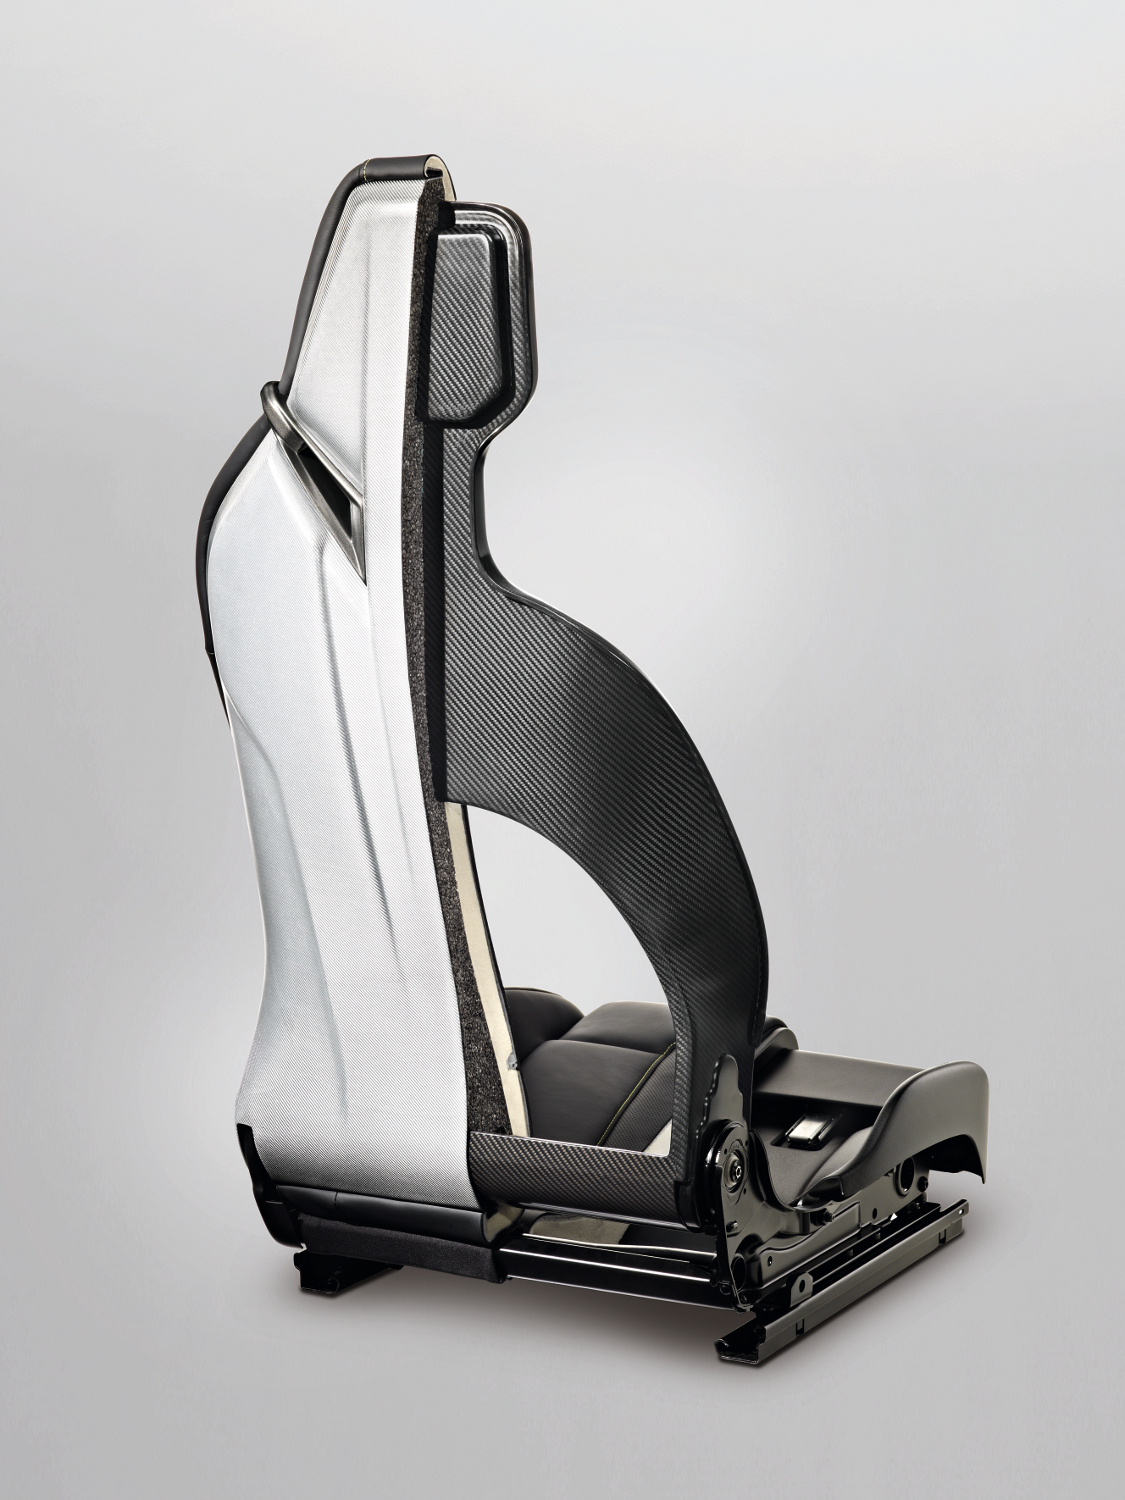 Recaro Sportsitzplattform Pure Seating